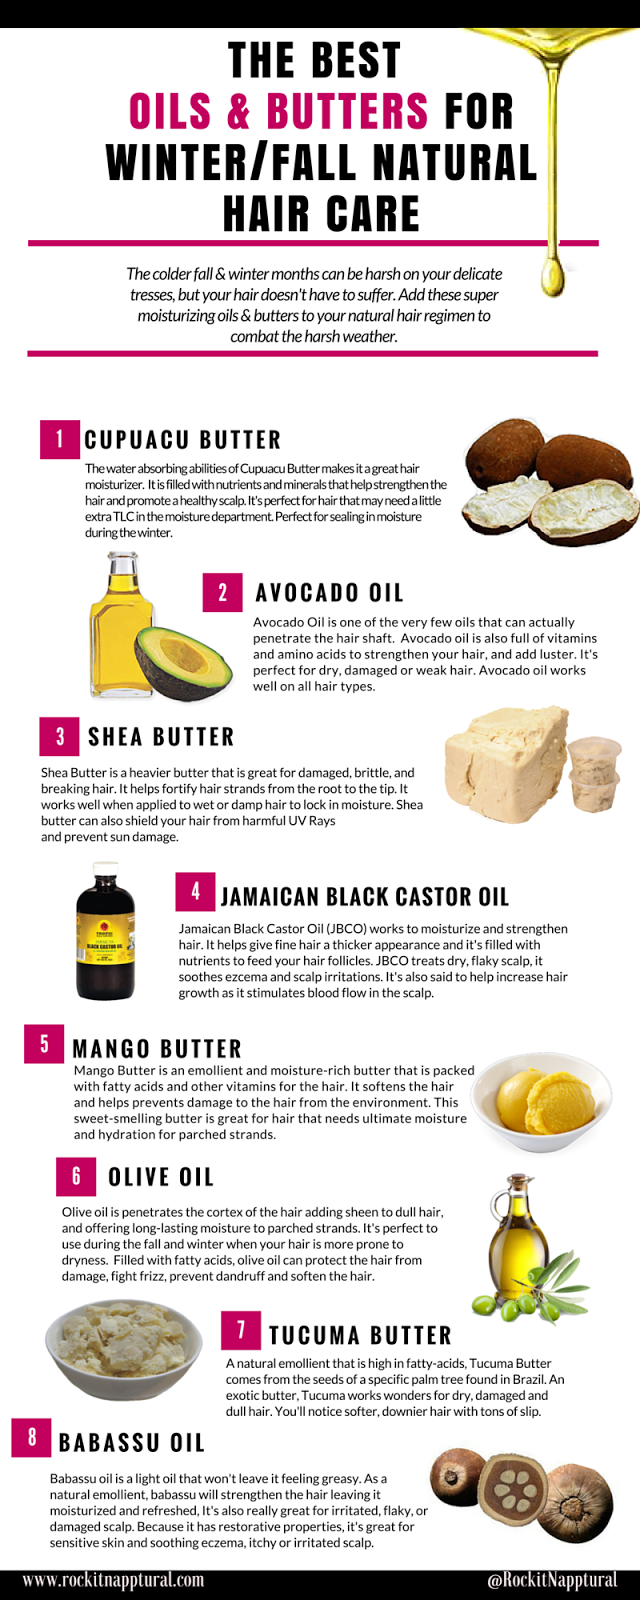 Natural Oils That Are Good For Your Hair